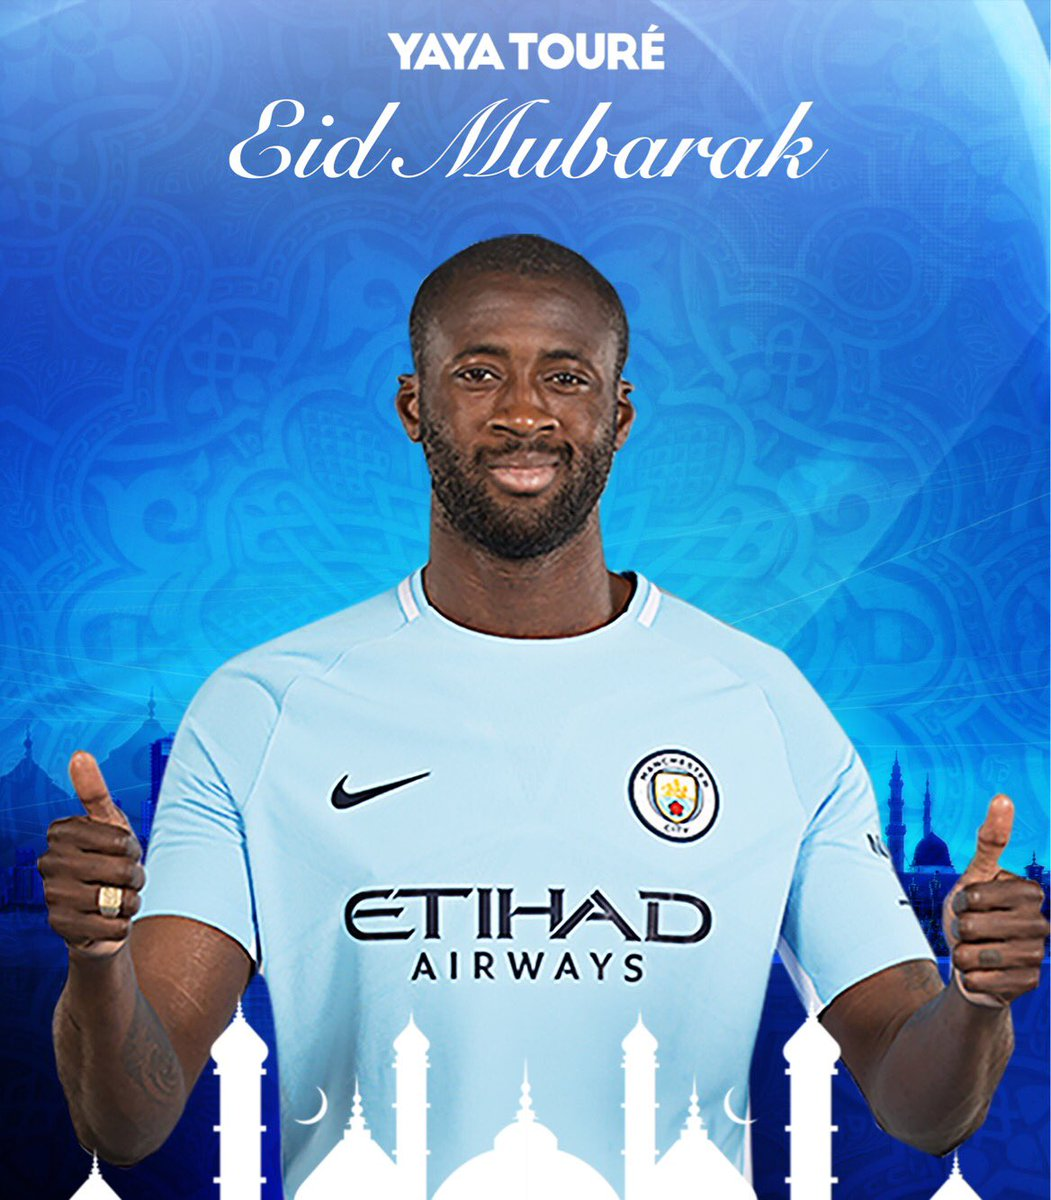 Eid Mubarak everyone! #EidMubarak https://t.co/7j4jc7ALPA